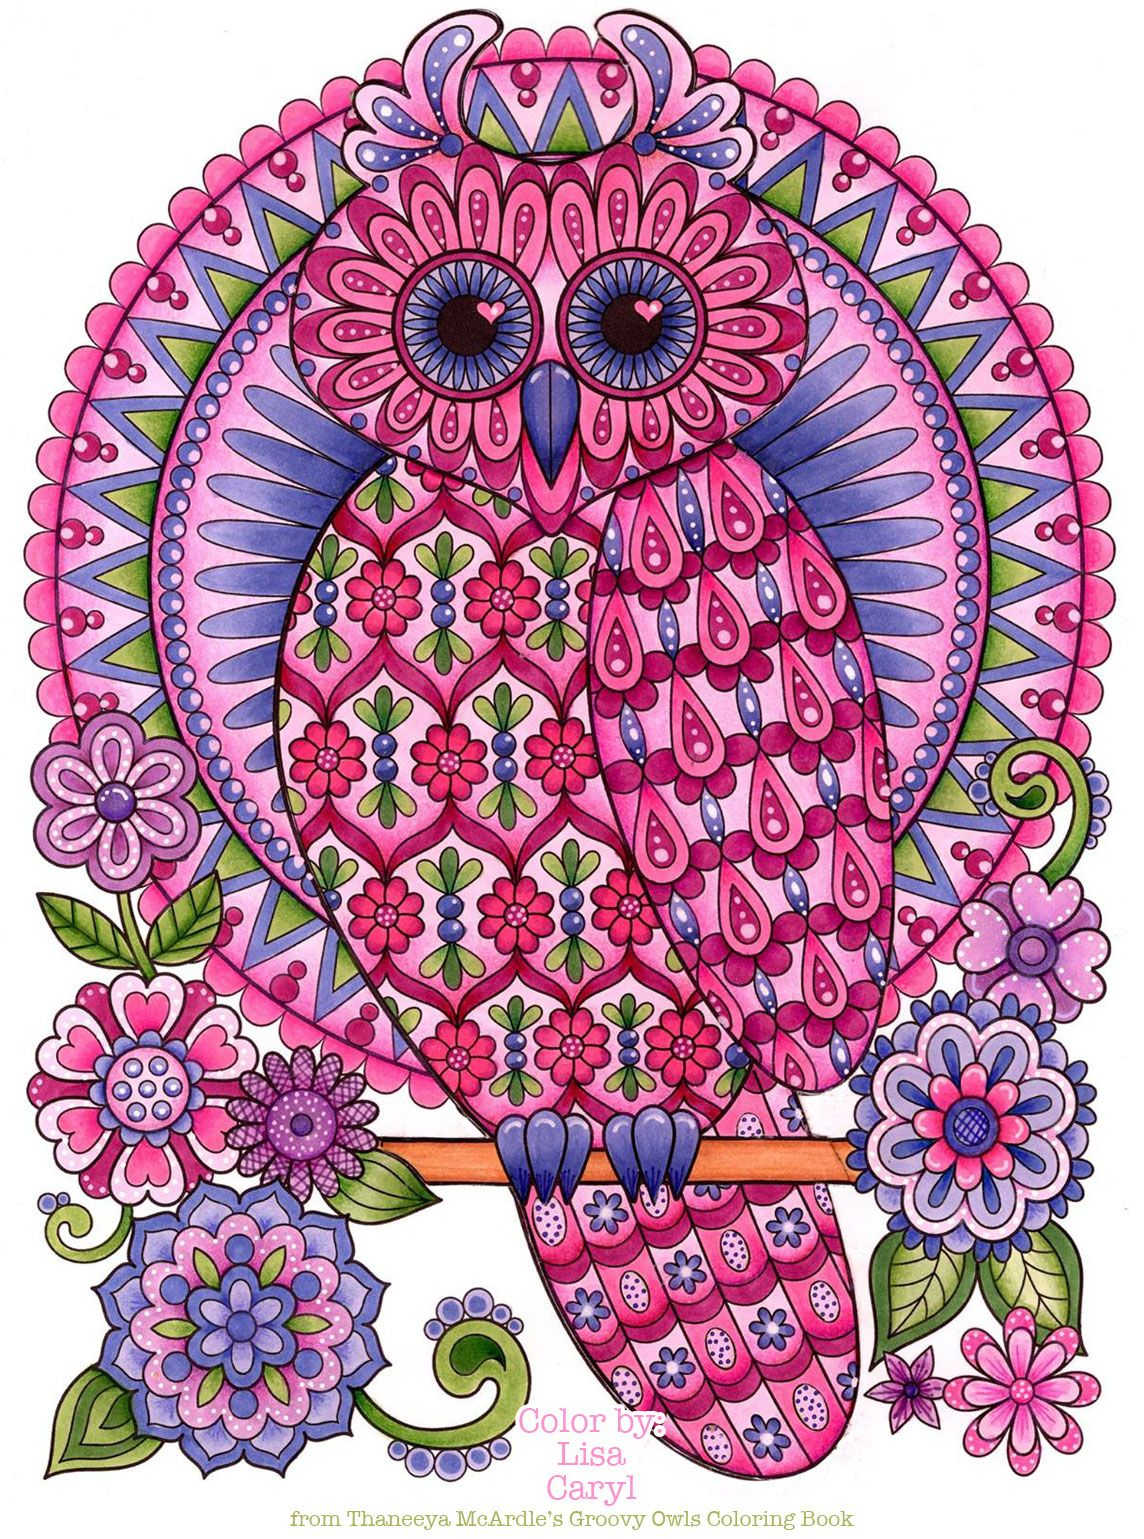 Owl Coloring Page From Thaneeya Mcardle S Groovy Owls Coloring Book Owl Coloring Pages Coloring Book Art Animal Coloring Pages